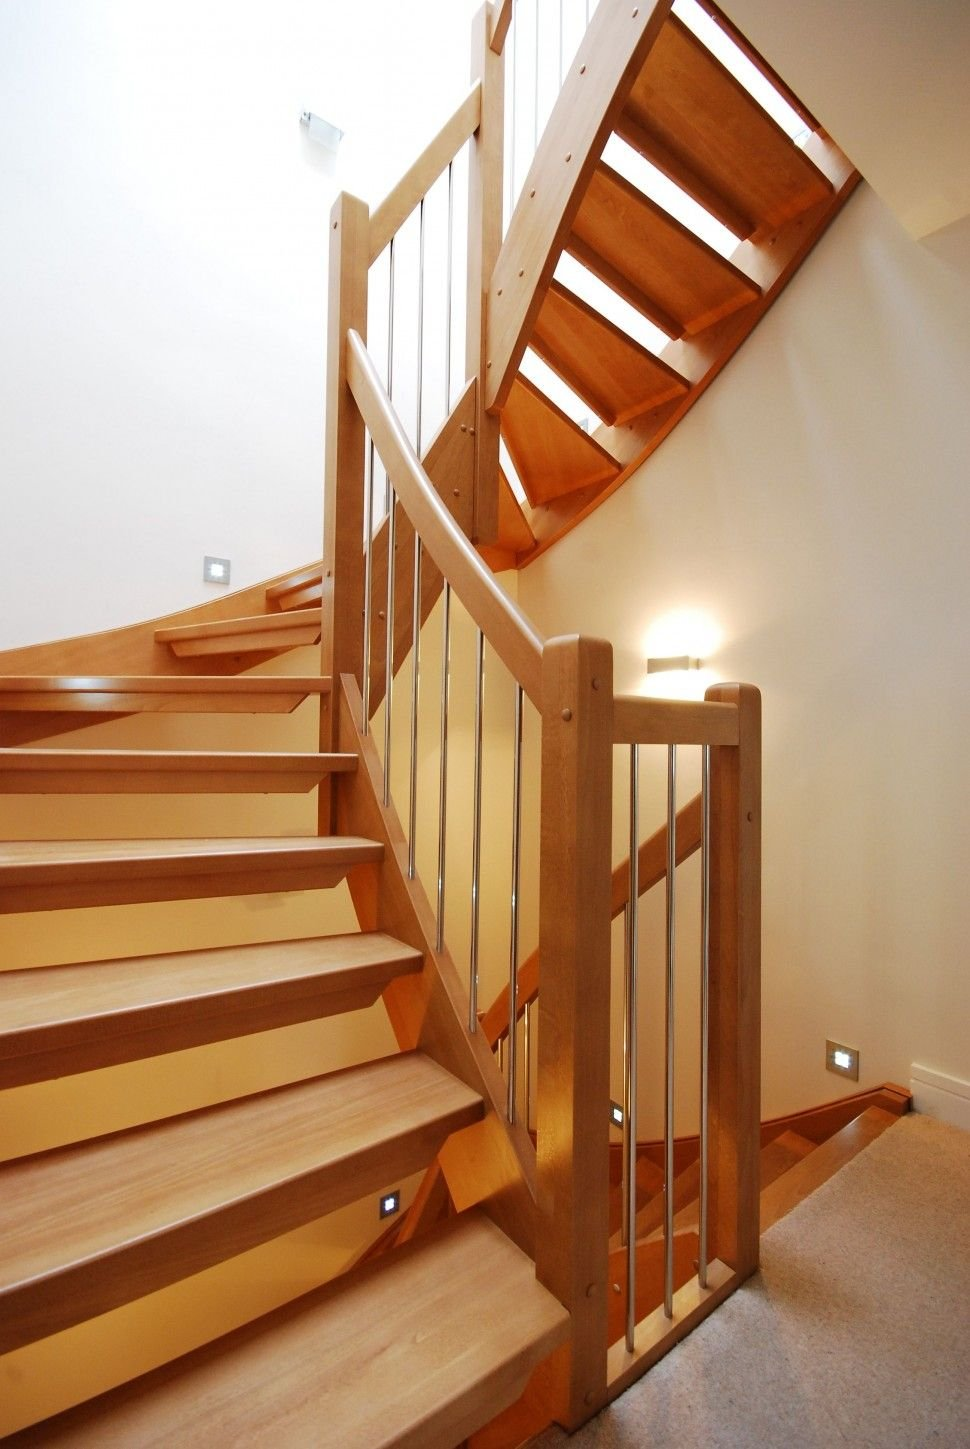 Wooden Handrail Stair Classic Handrail Outdoor Wooden Spiral Staircase